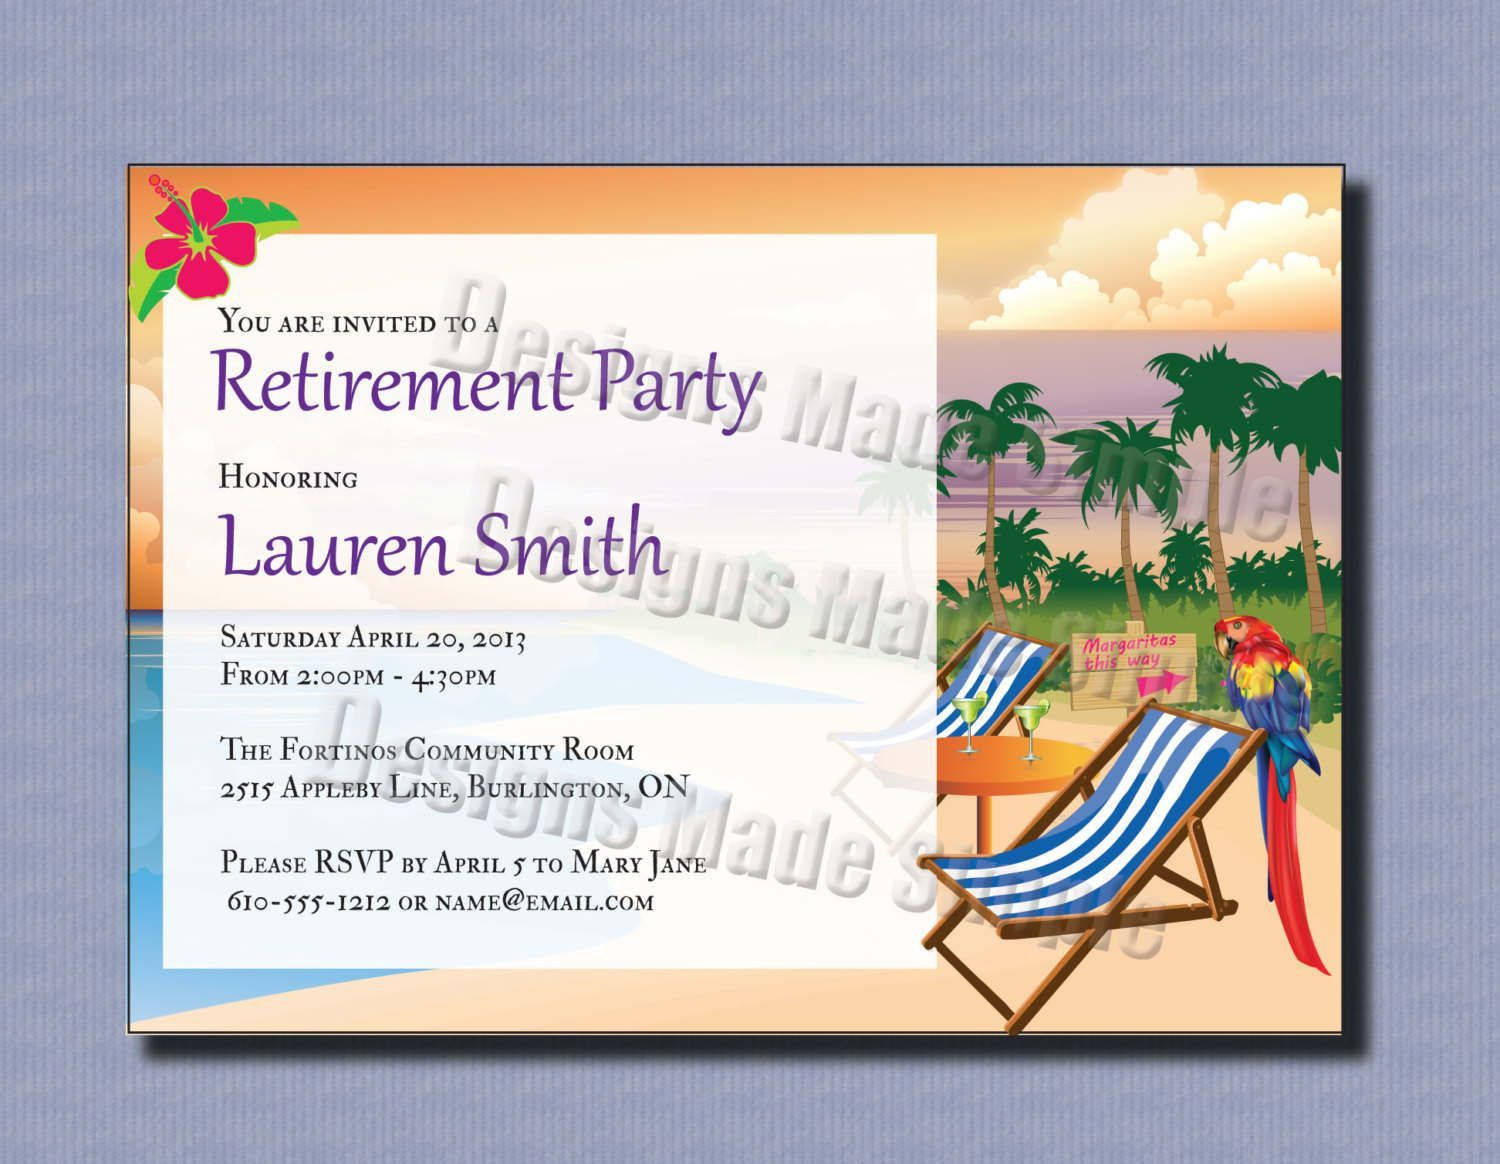 000 Phenomenal Retirement Invitation Template Free Inspiration  Party Word DownloadFull